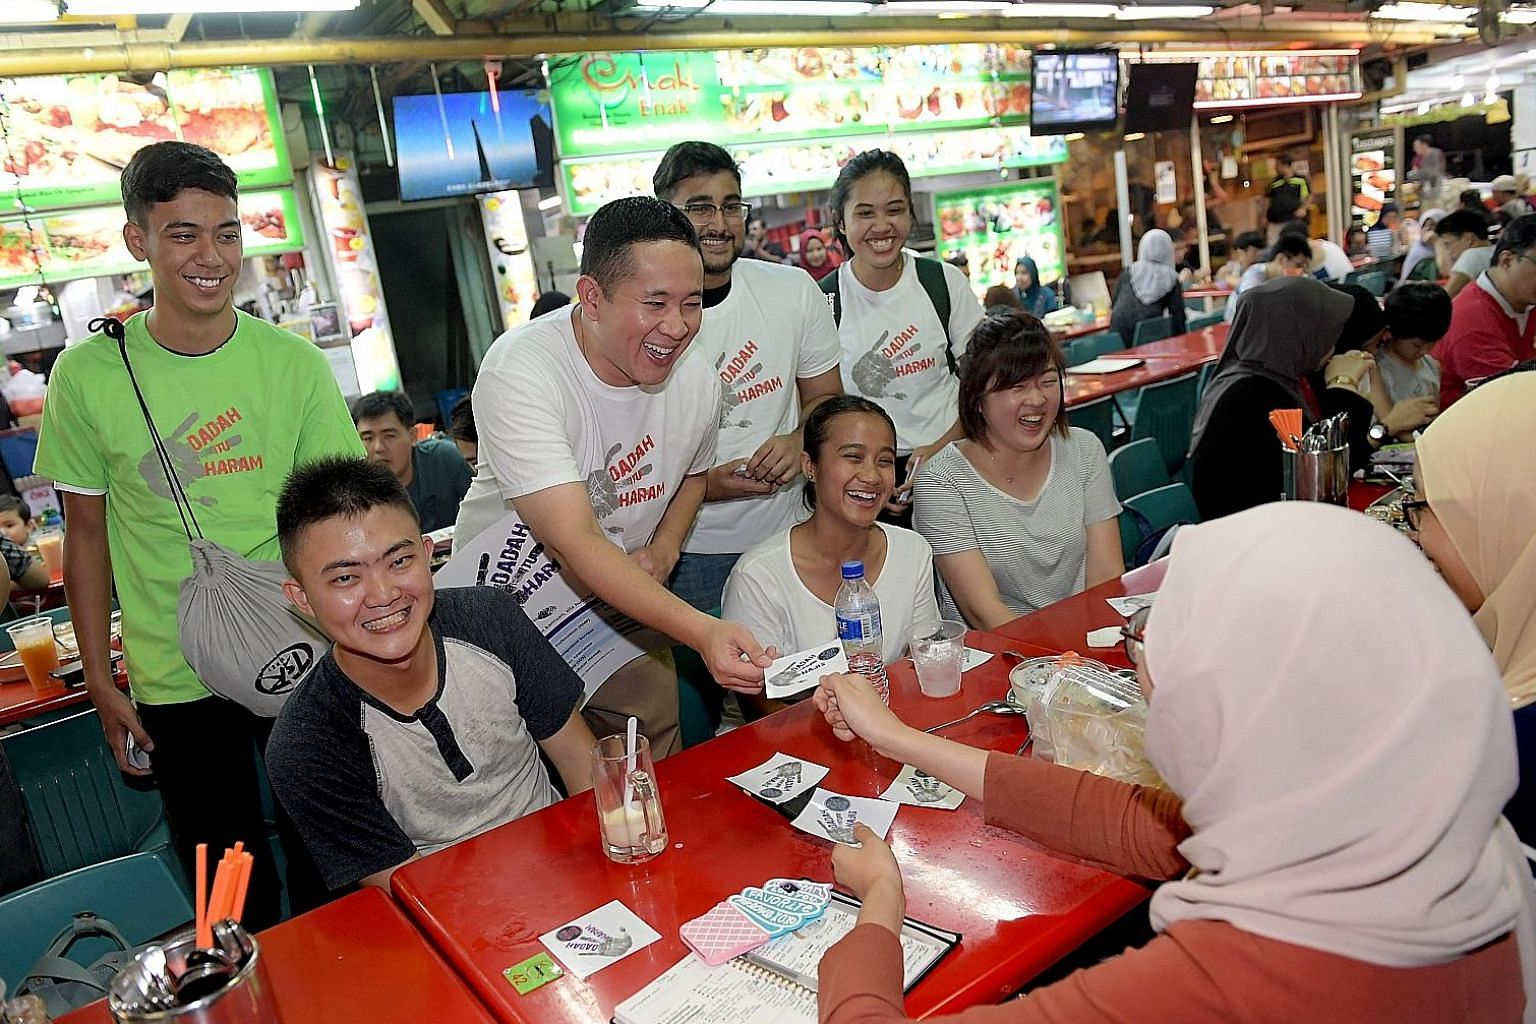 Parliamentary Secretary for Home Affairs Amrin Amin (standing, second from left) and volunteers, including Hairul Marvin (left in green), 17, giving out anti-drug stickers to patrons in Simpang Bedok yesterday.